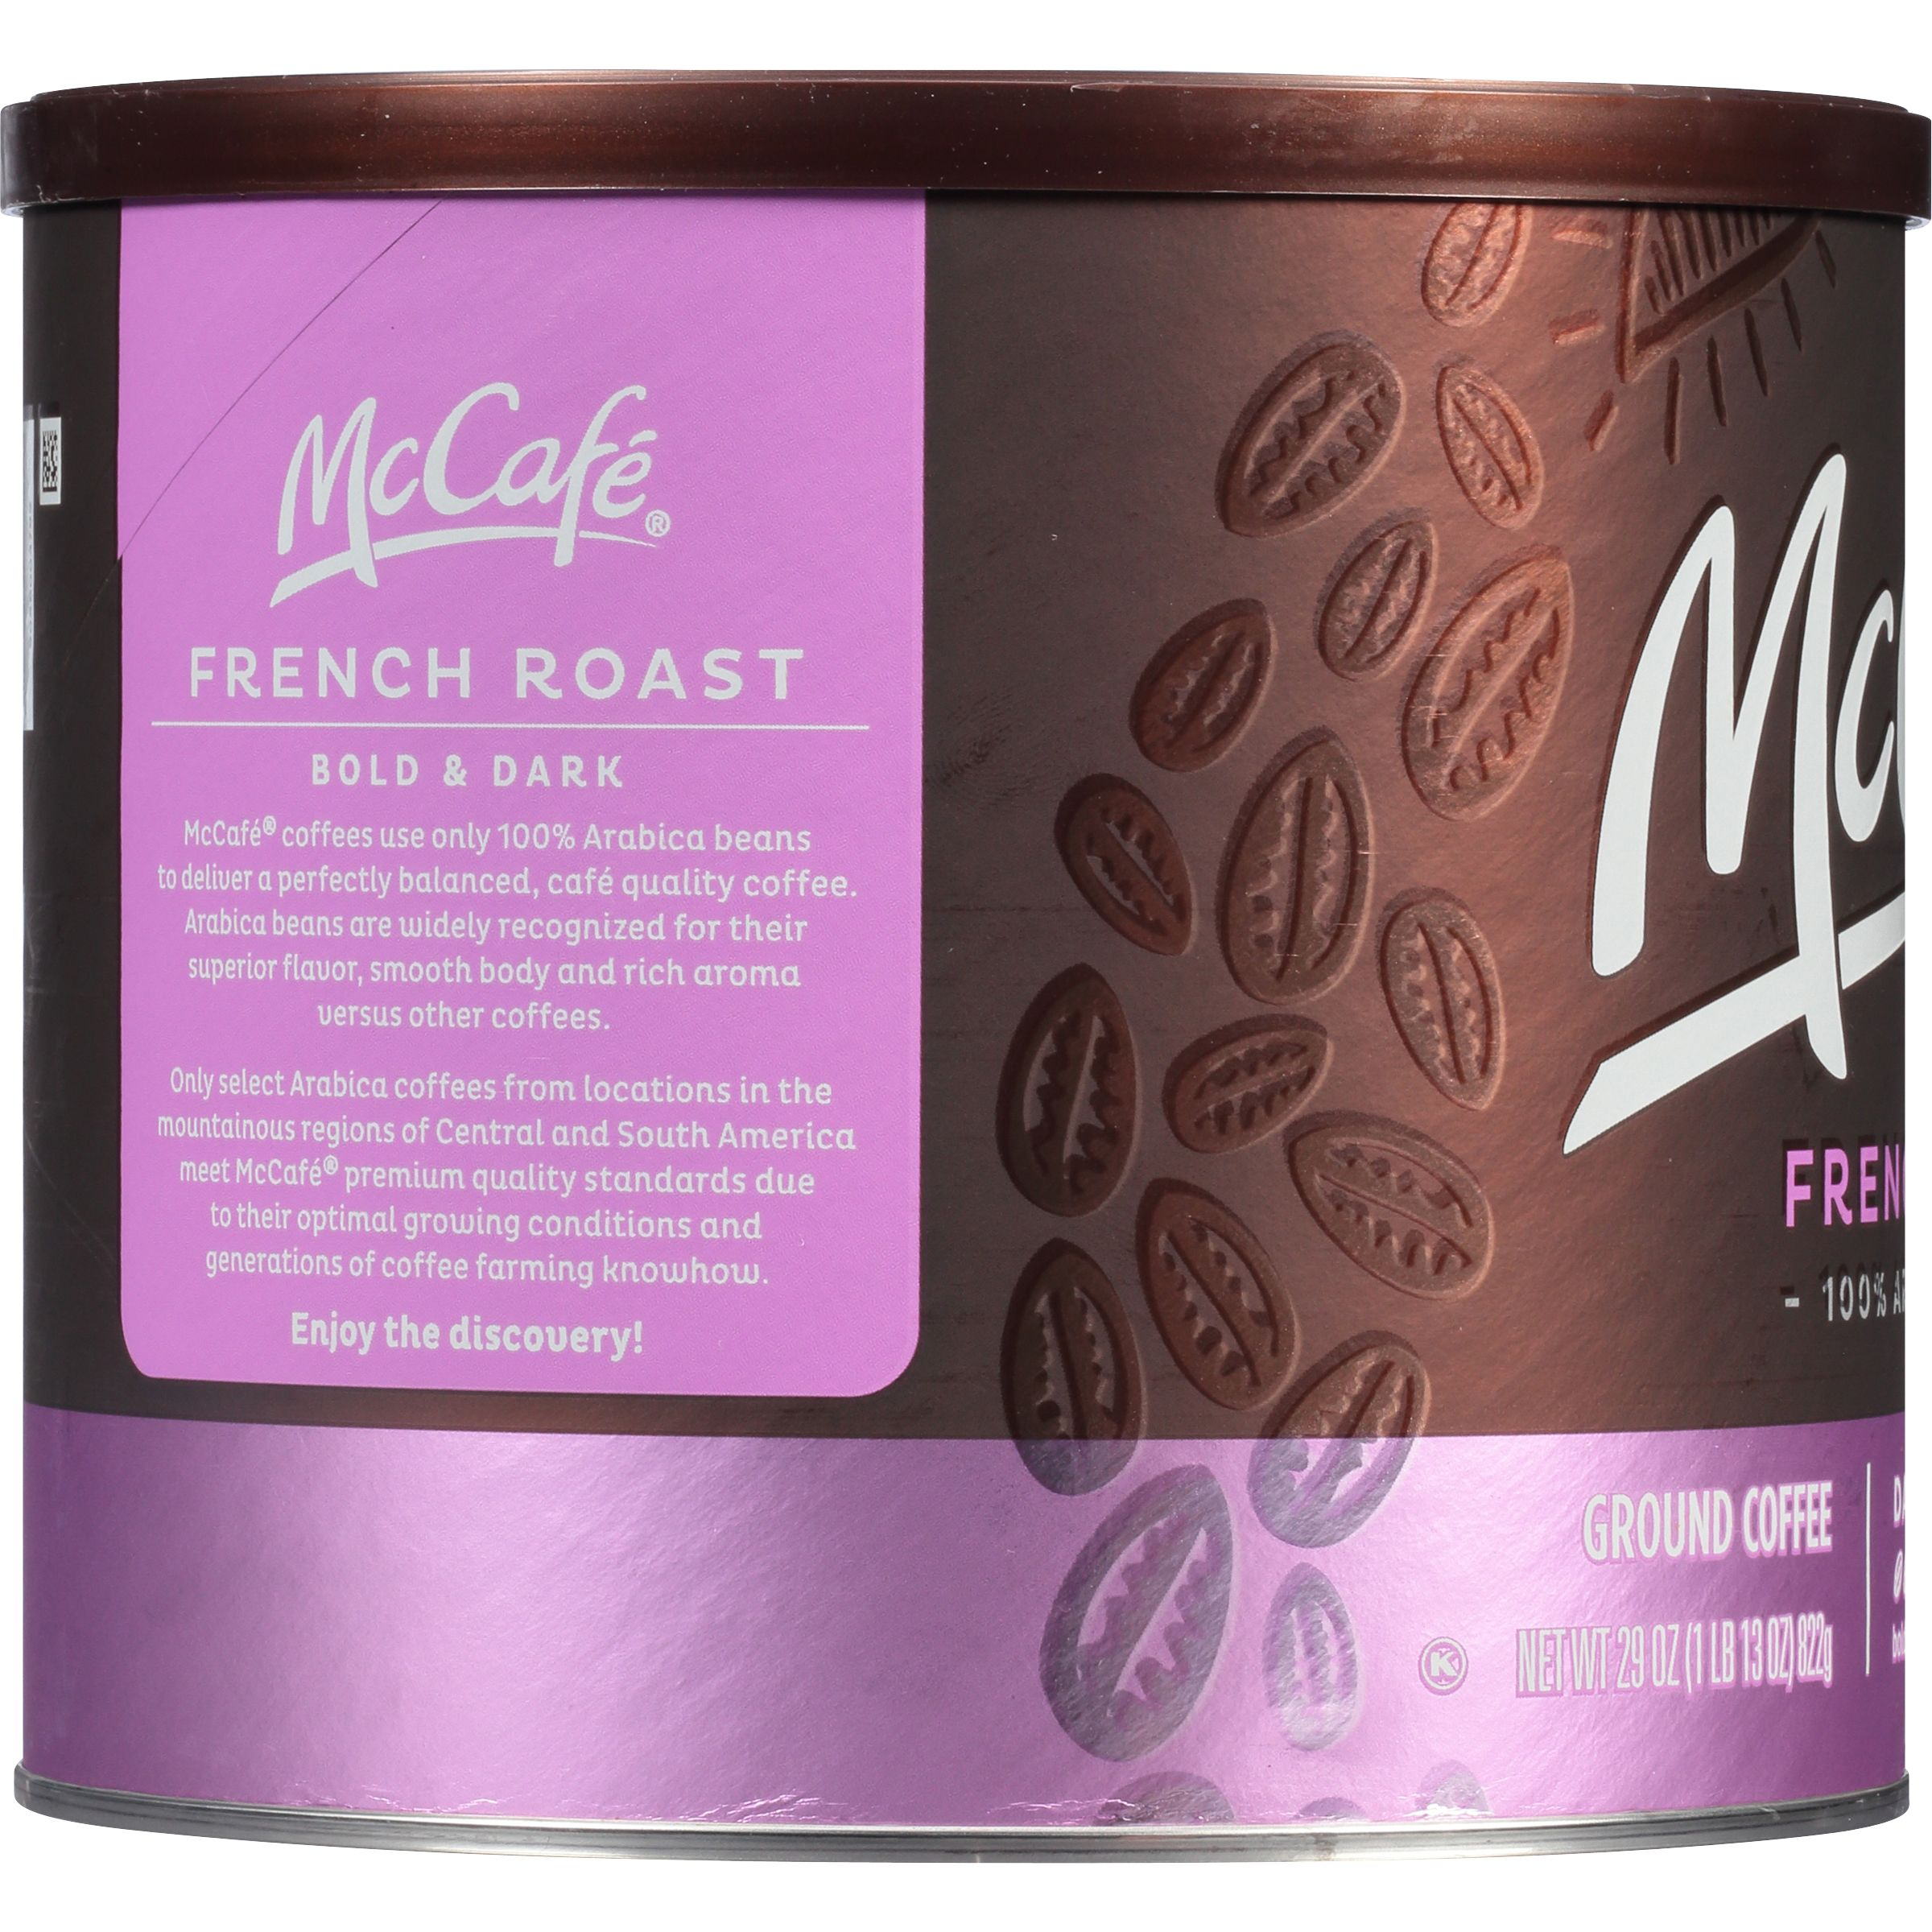 McCafe French Roast Ground Coffee, Caffeinated, 29 oz Can